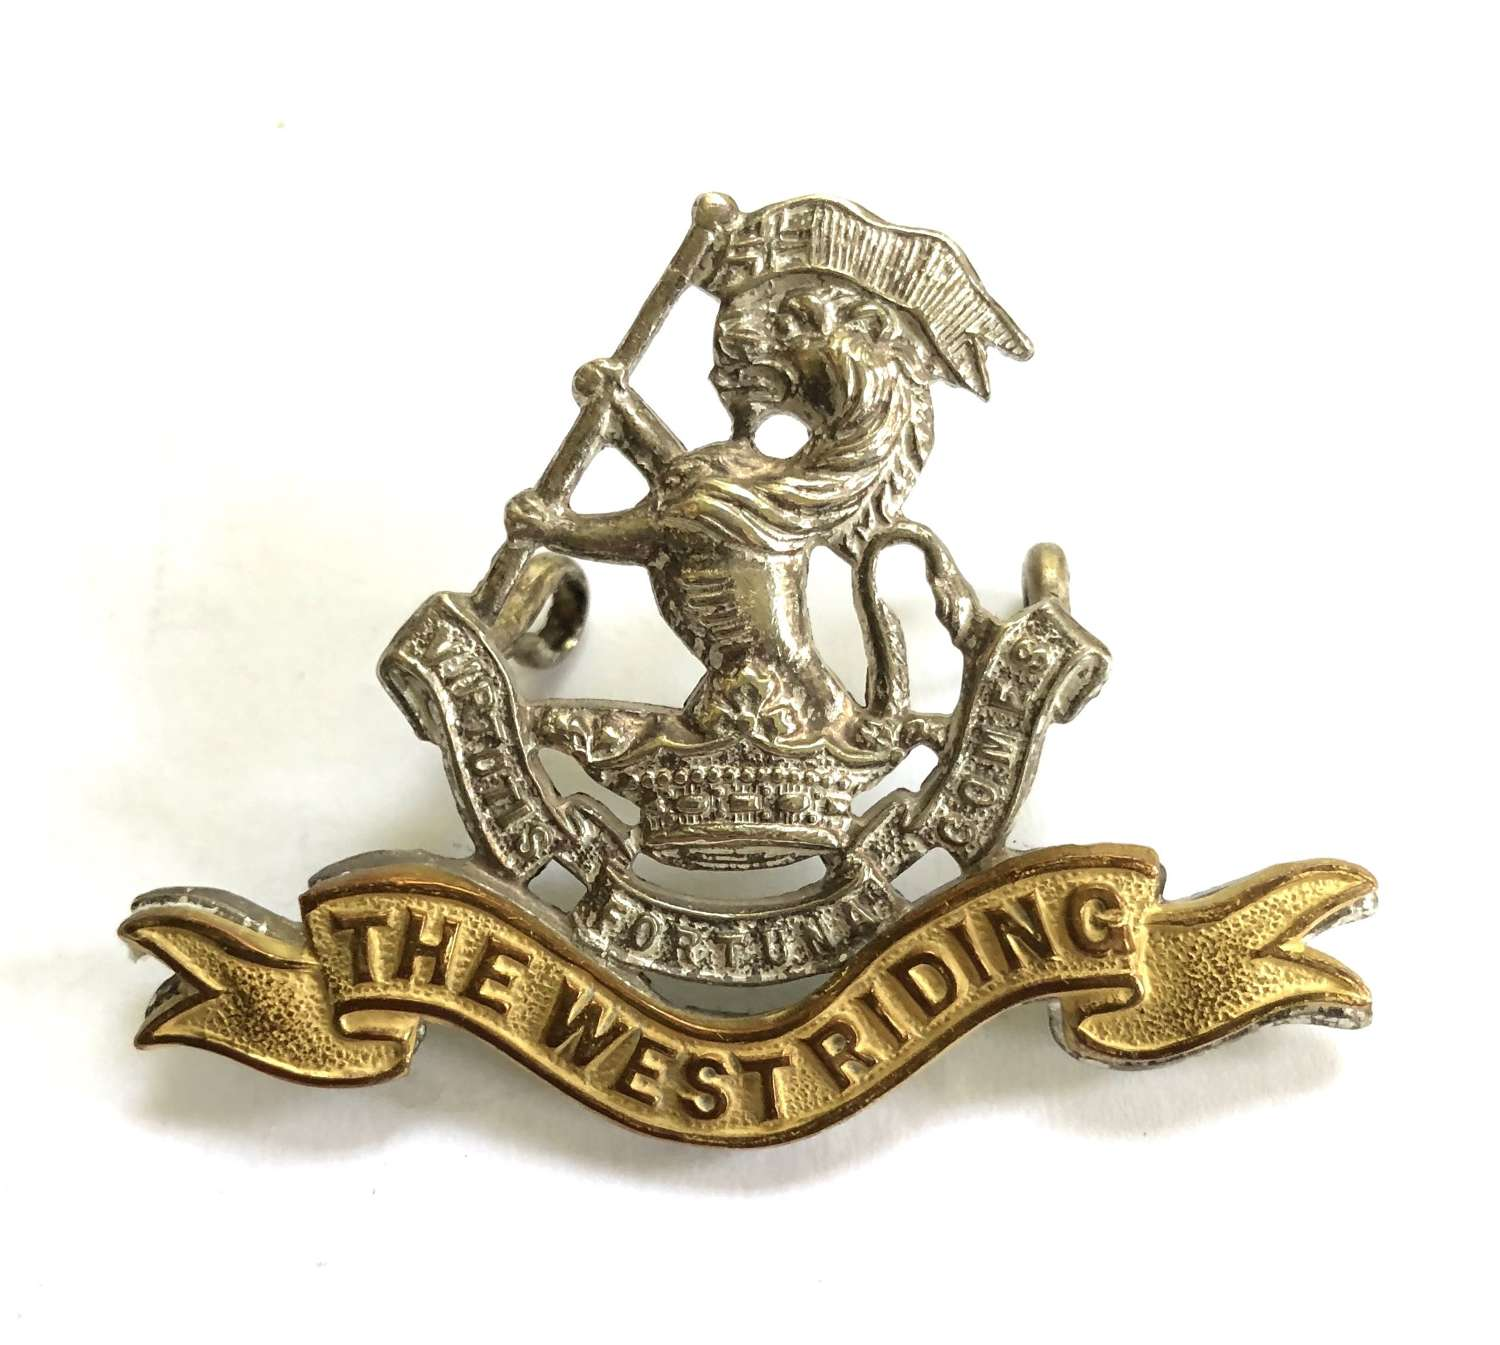 Duke of Wellington's West Riding Regiment Officer's cap badge